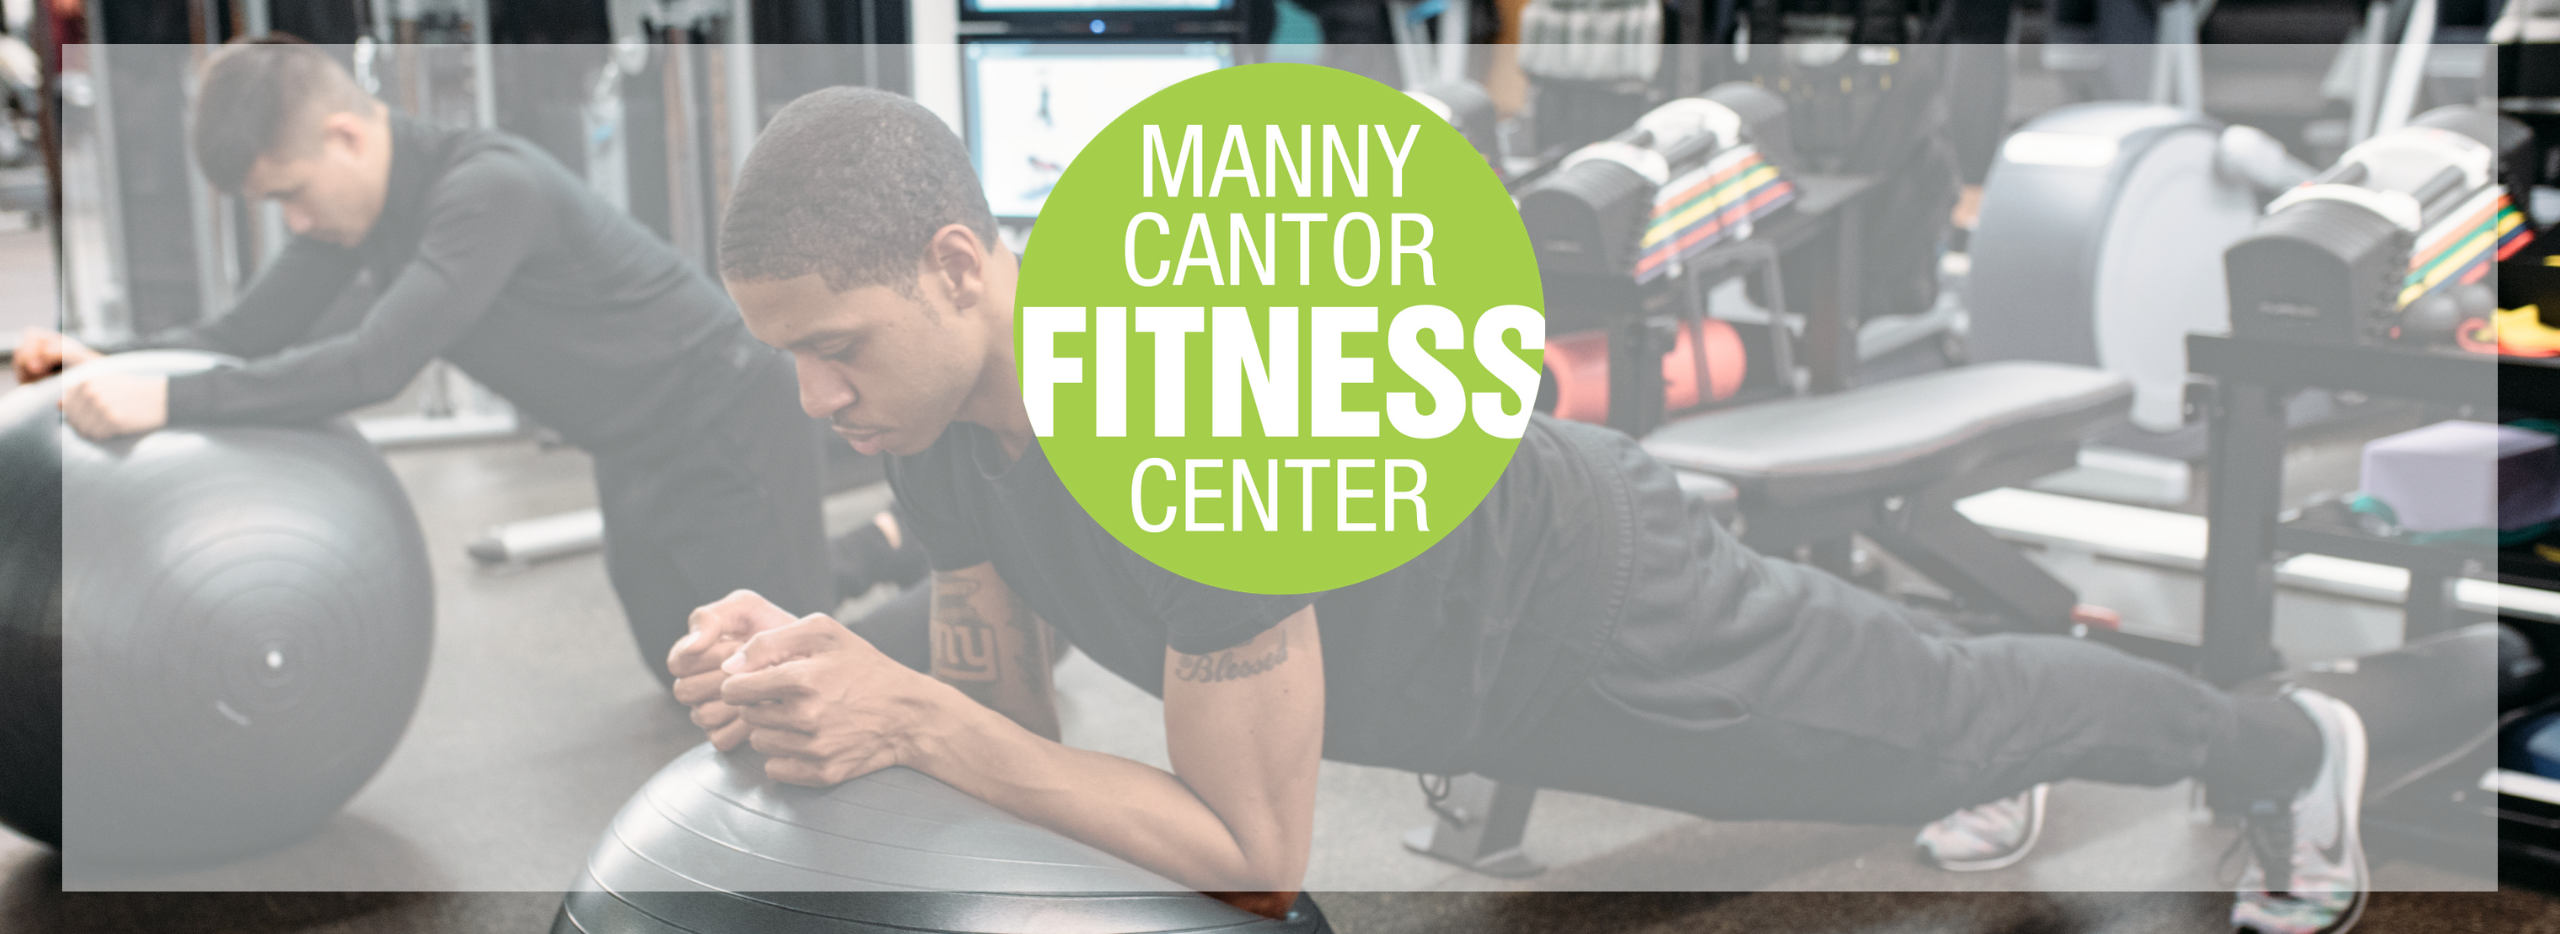 Manny Cantor Fitness Banner Image